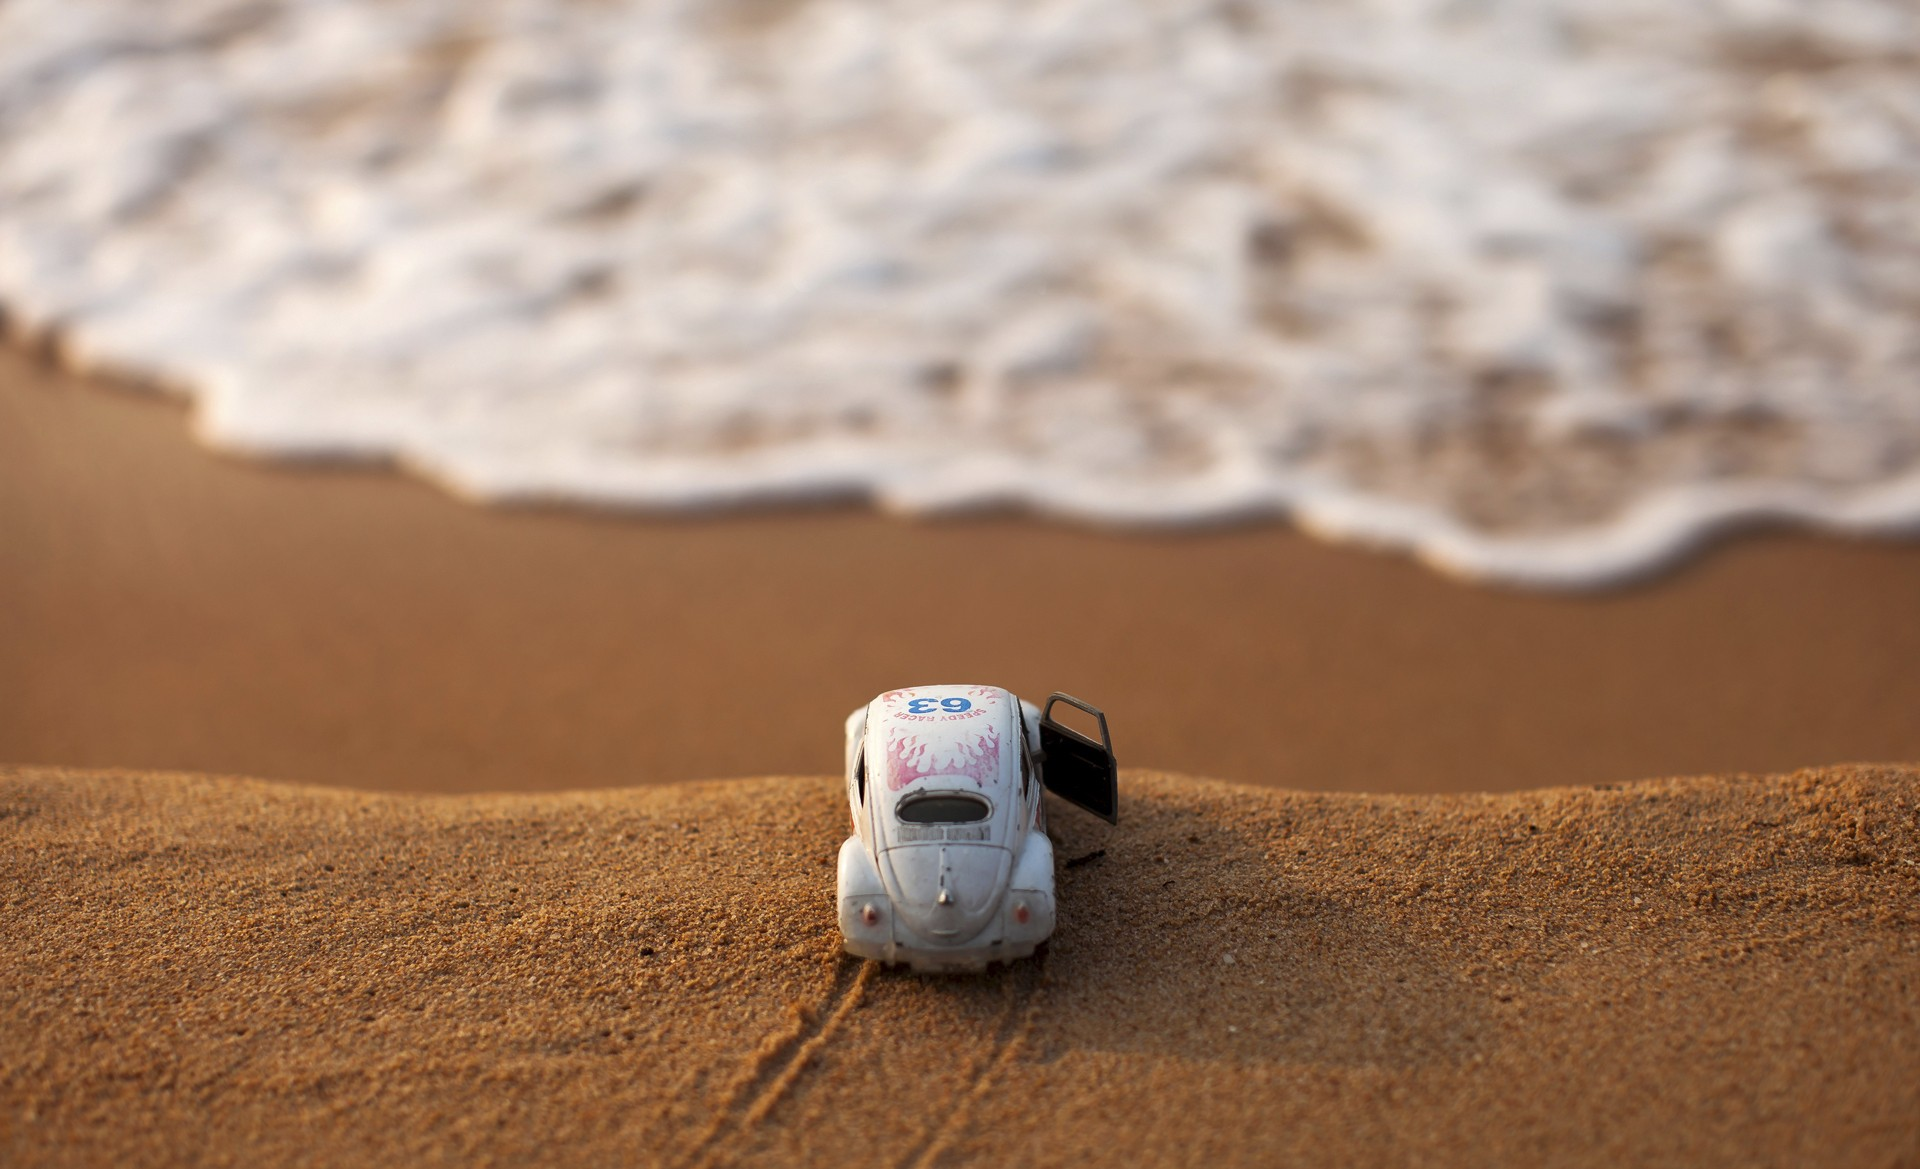 beach Water Toys Macro Car Volkswagen Beetle